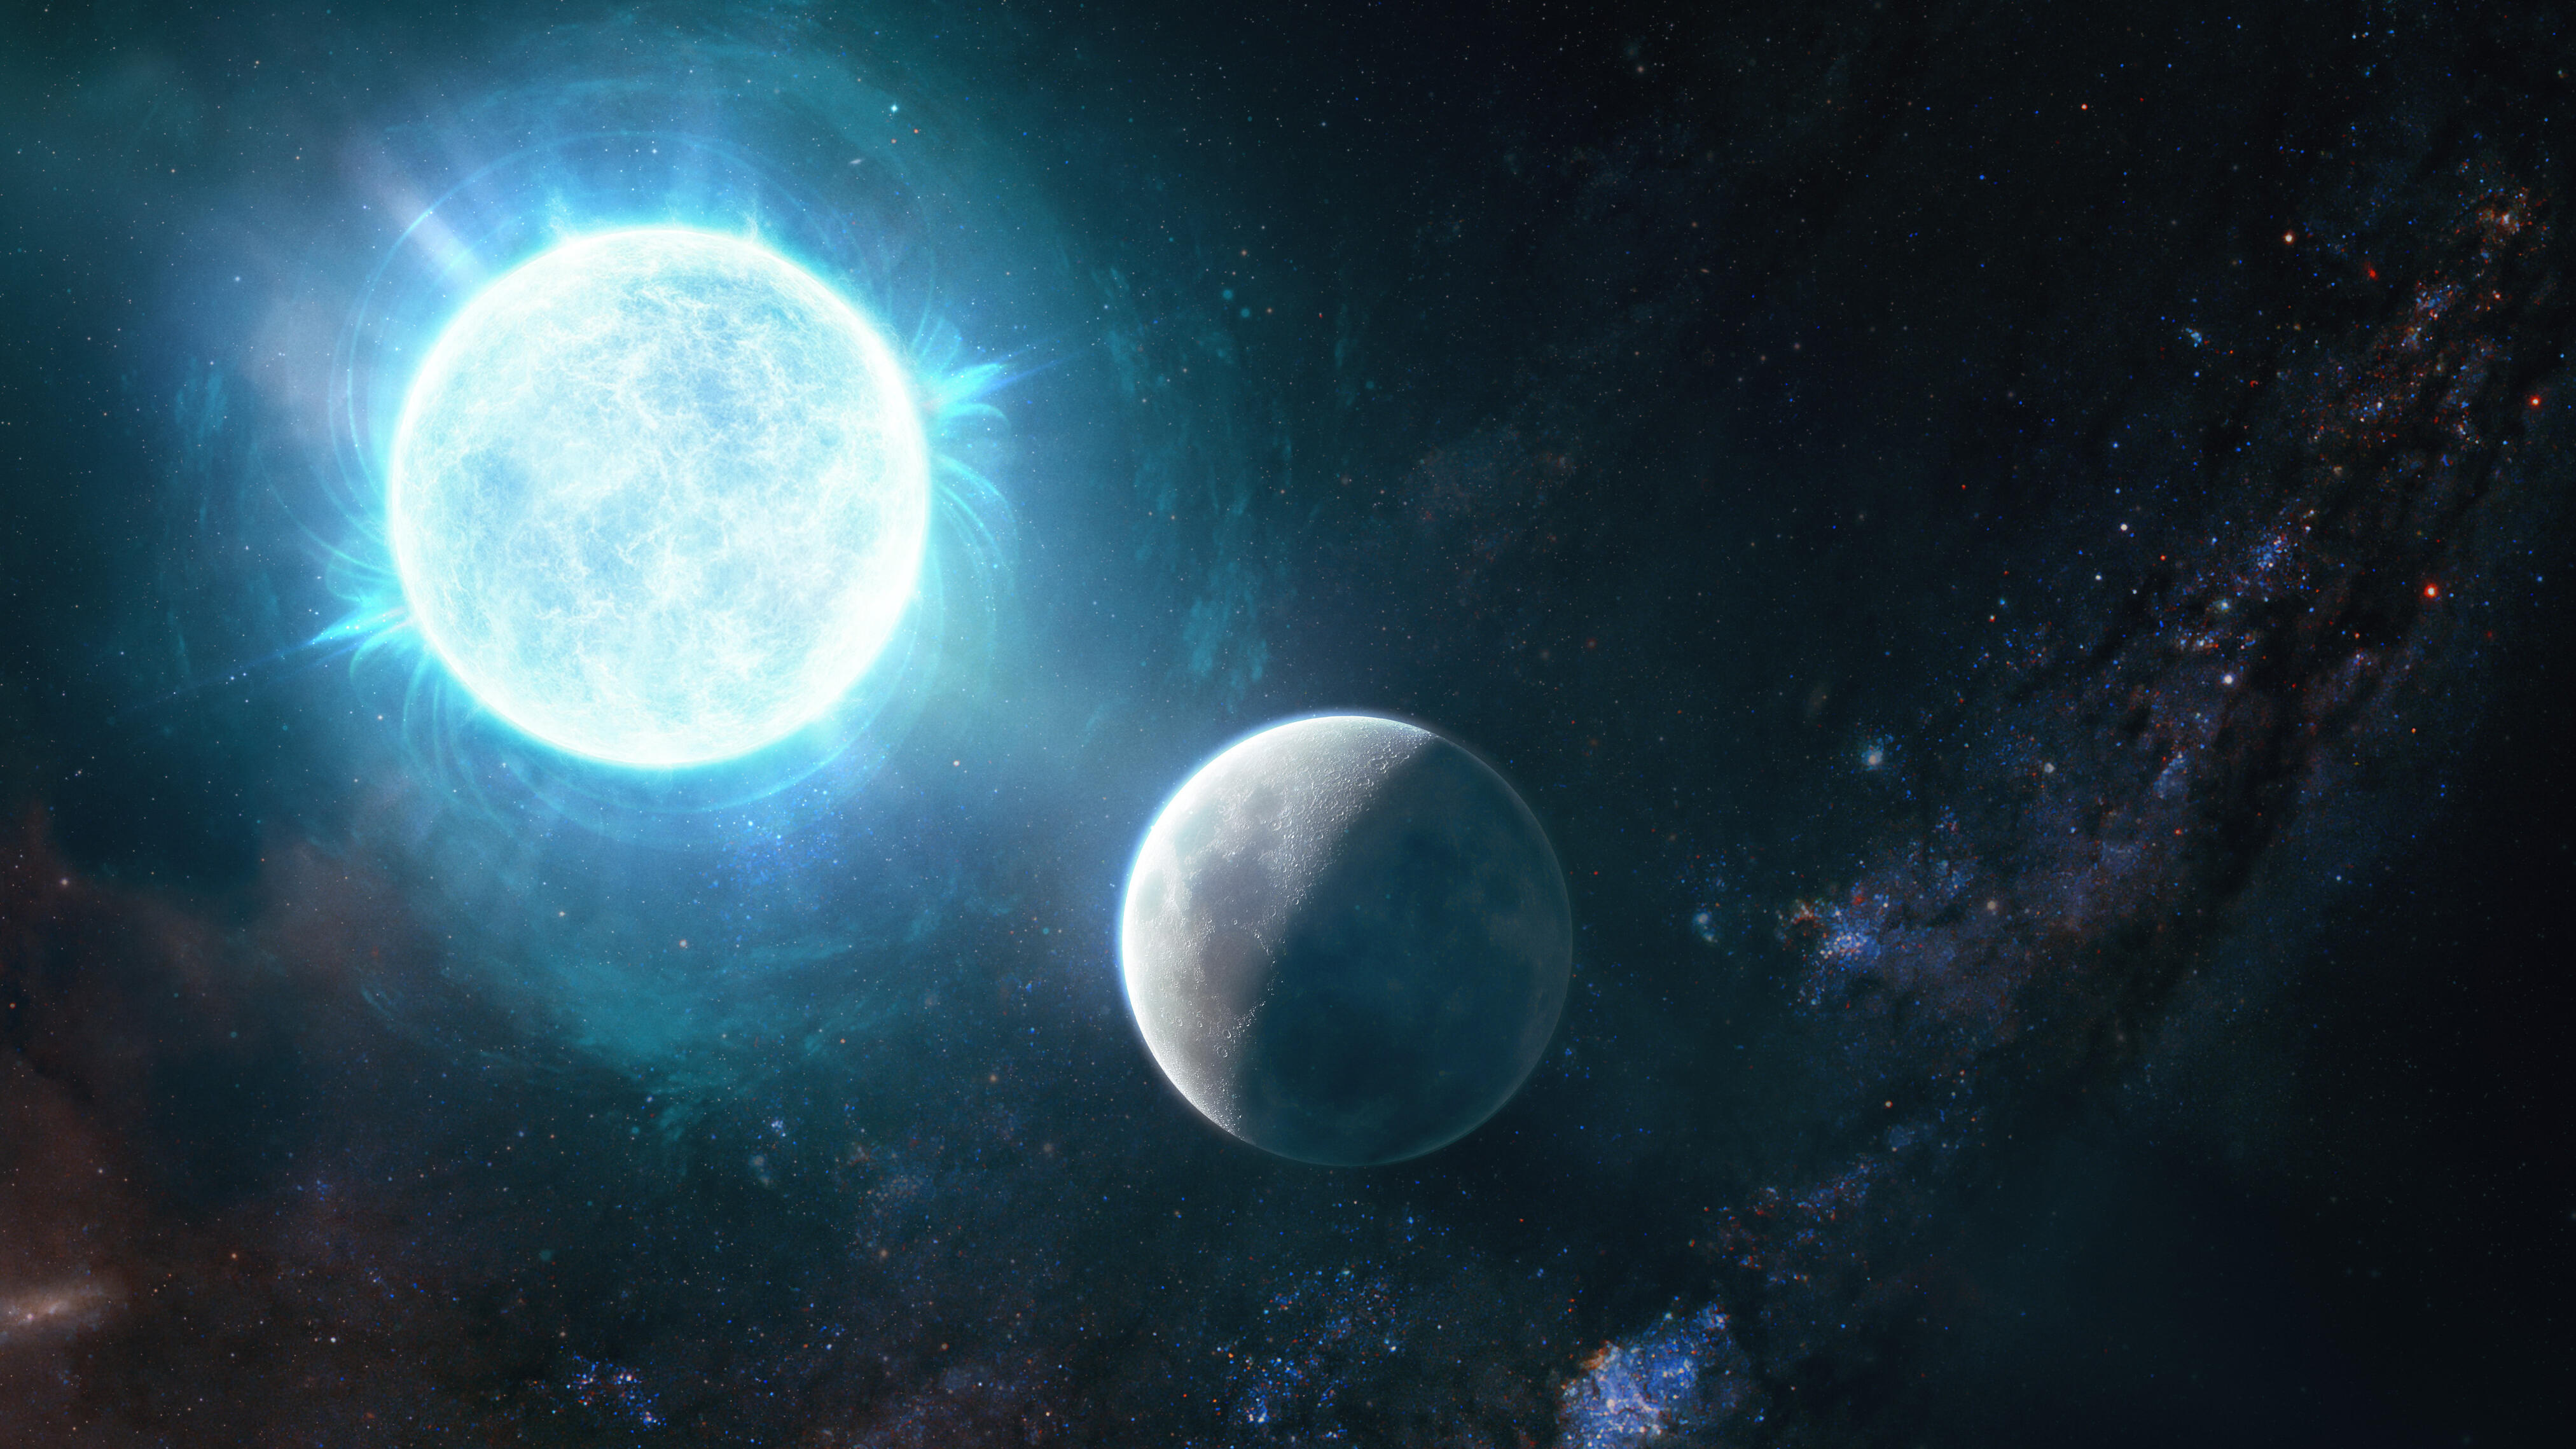 Illustration showing white dwarf star and Earth's moon side by side, for size comparison